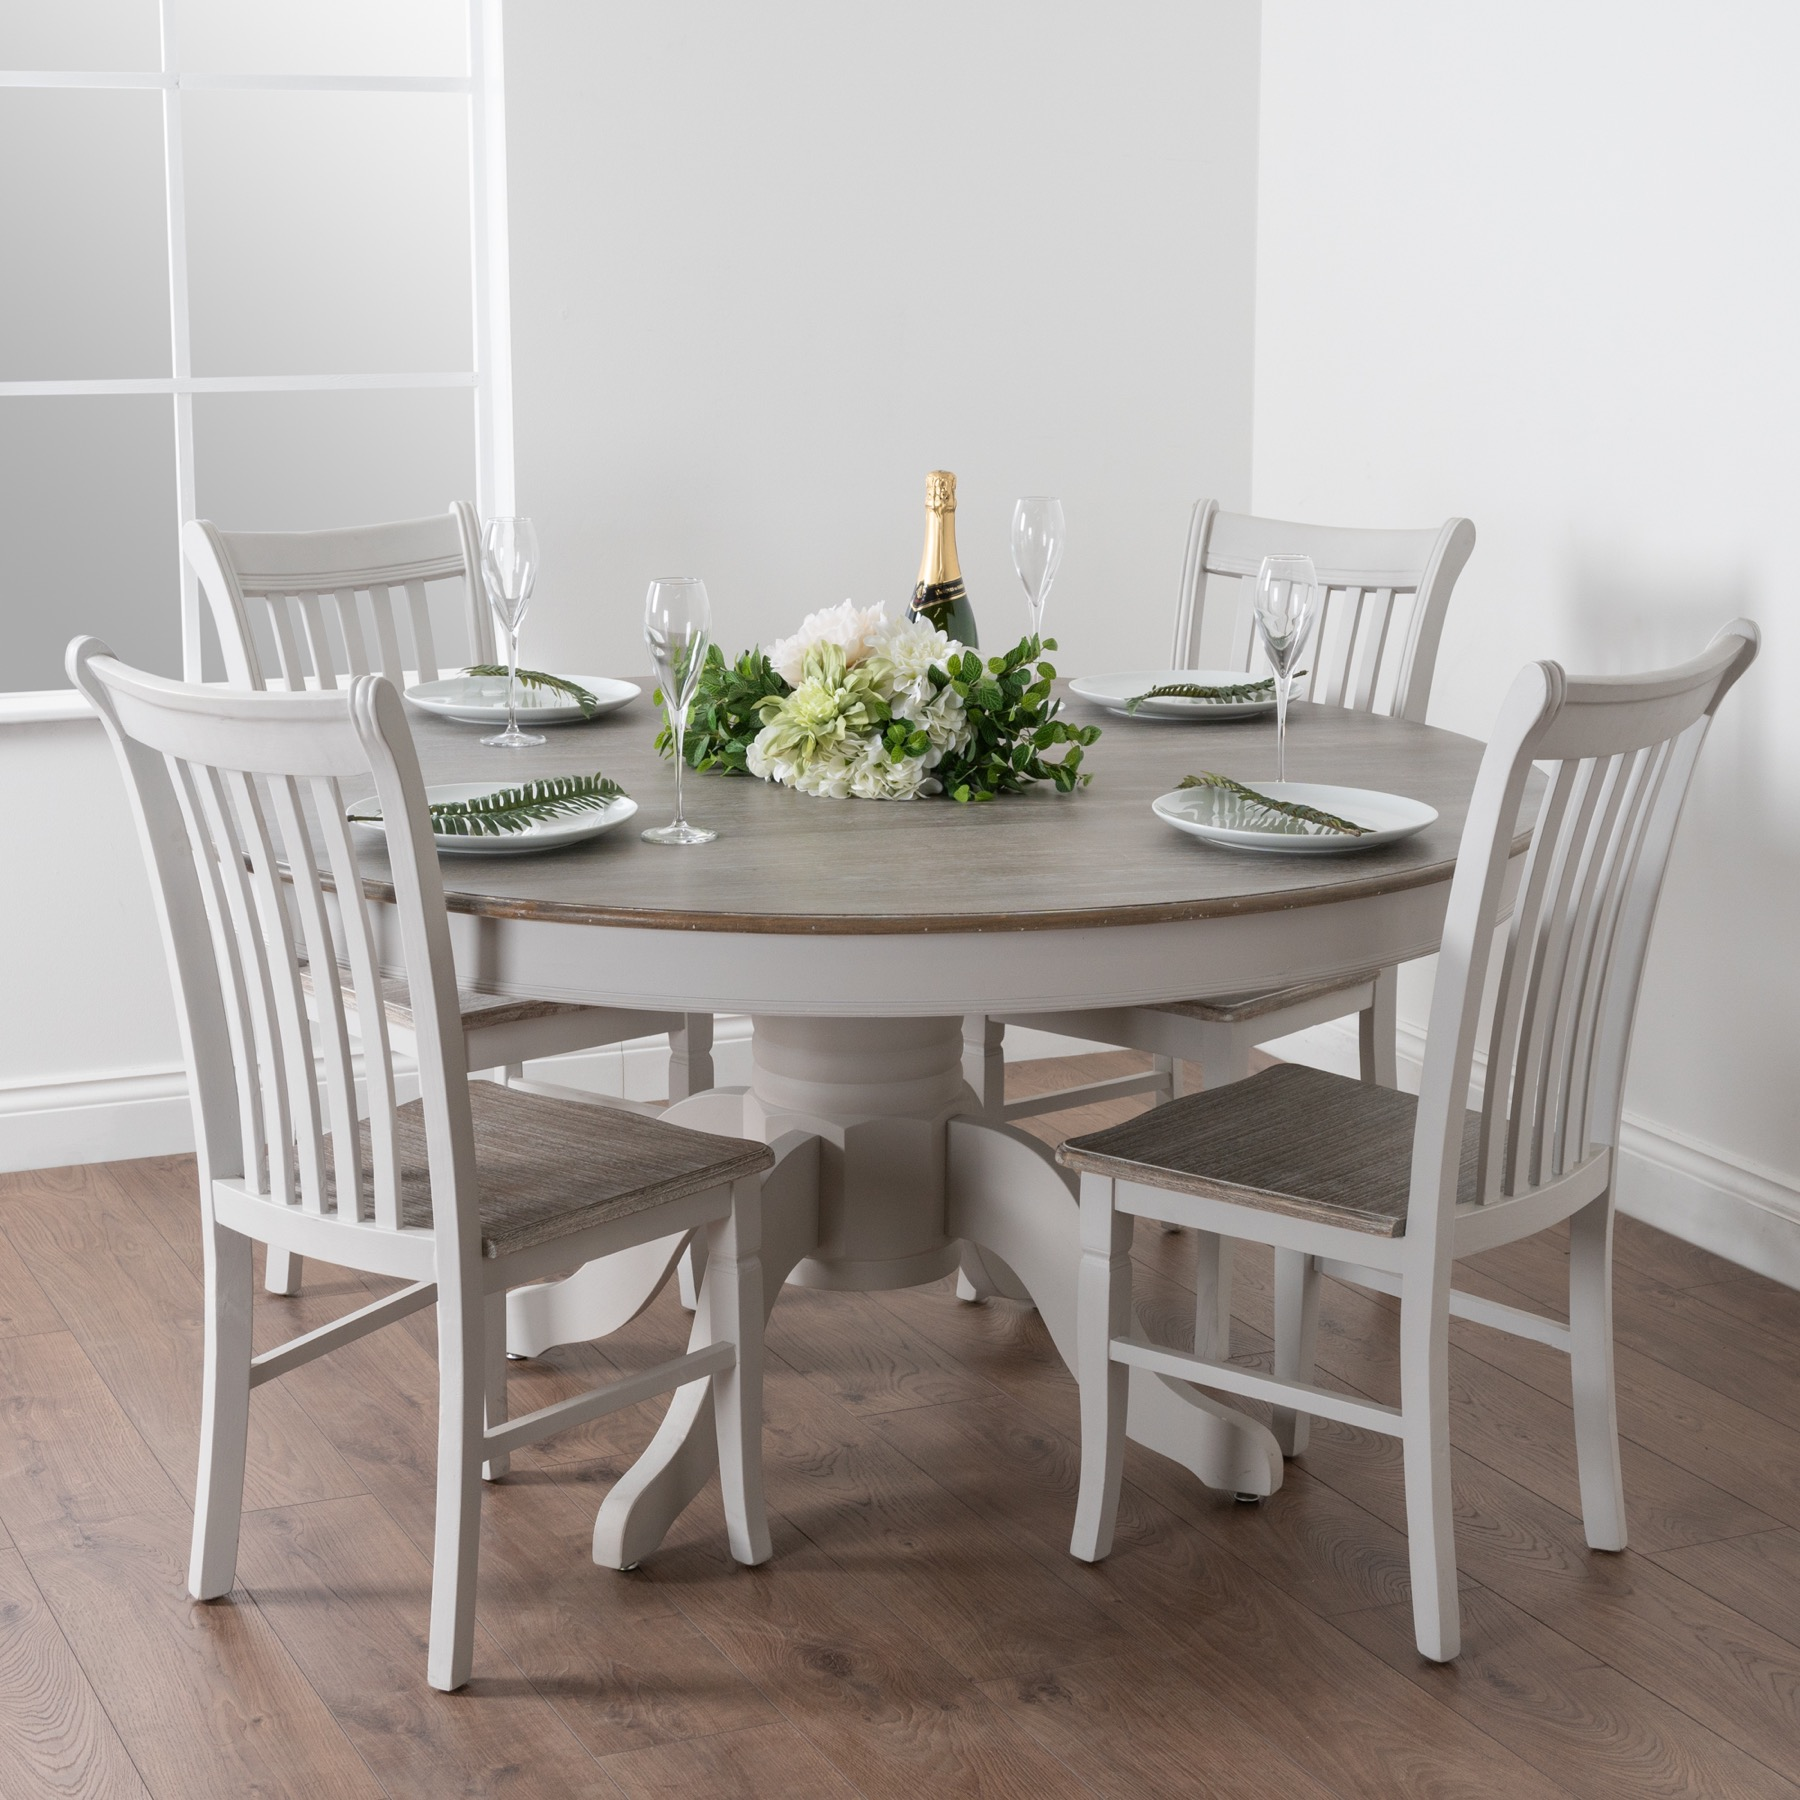 Honfleur Large Round Dining Table 3